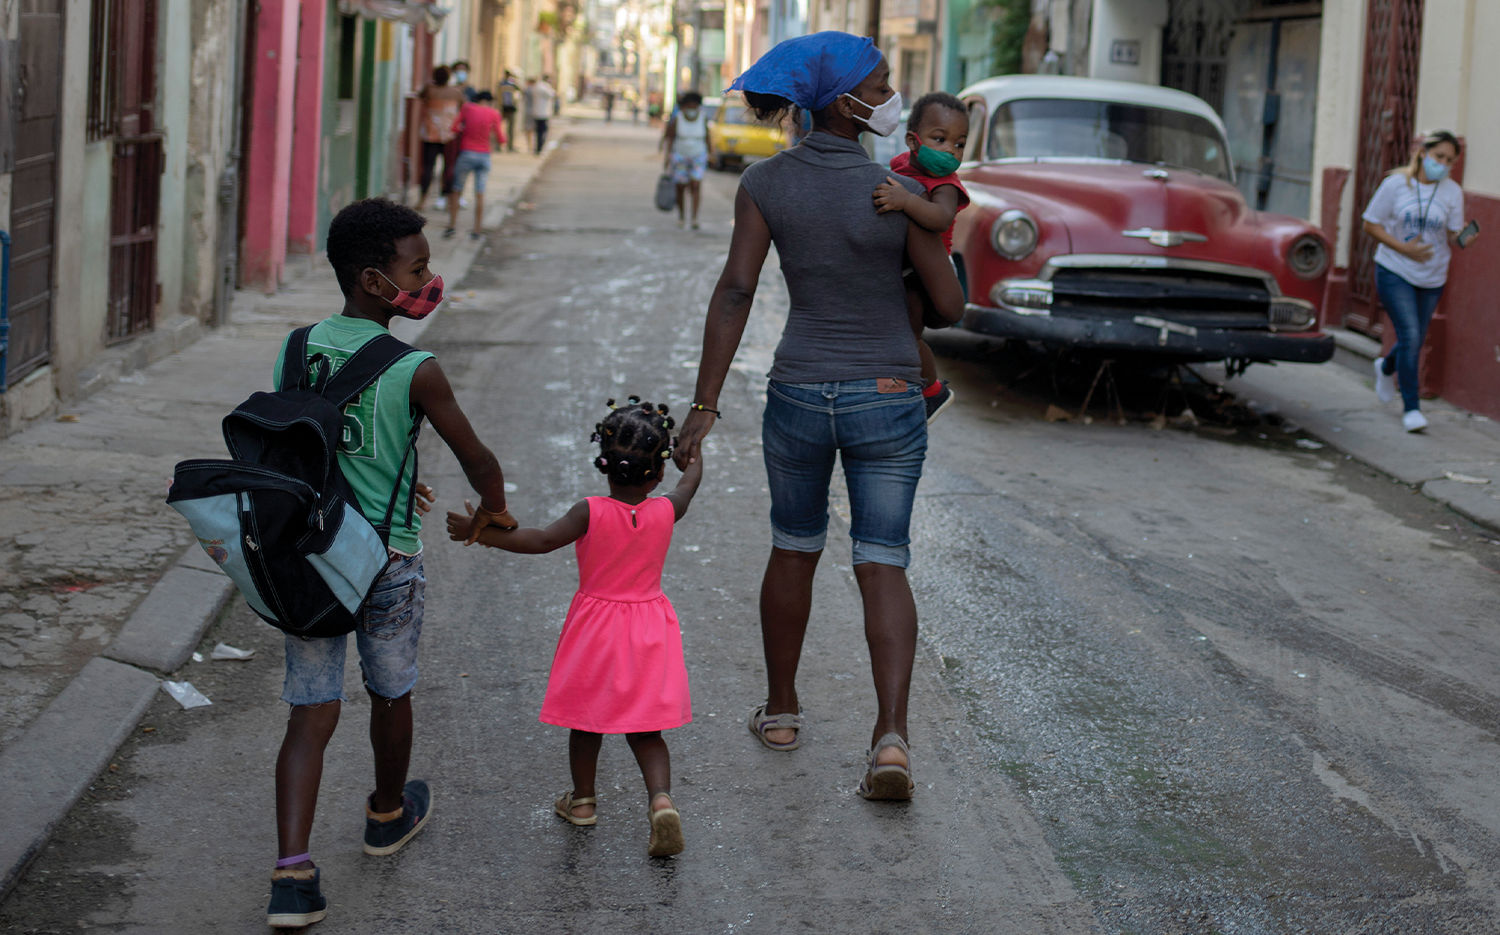 A family walks through the streets of Havana two days after the protests.